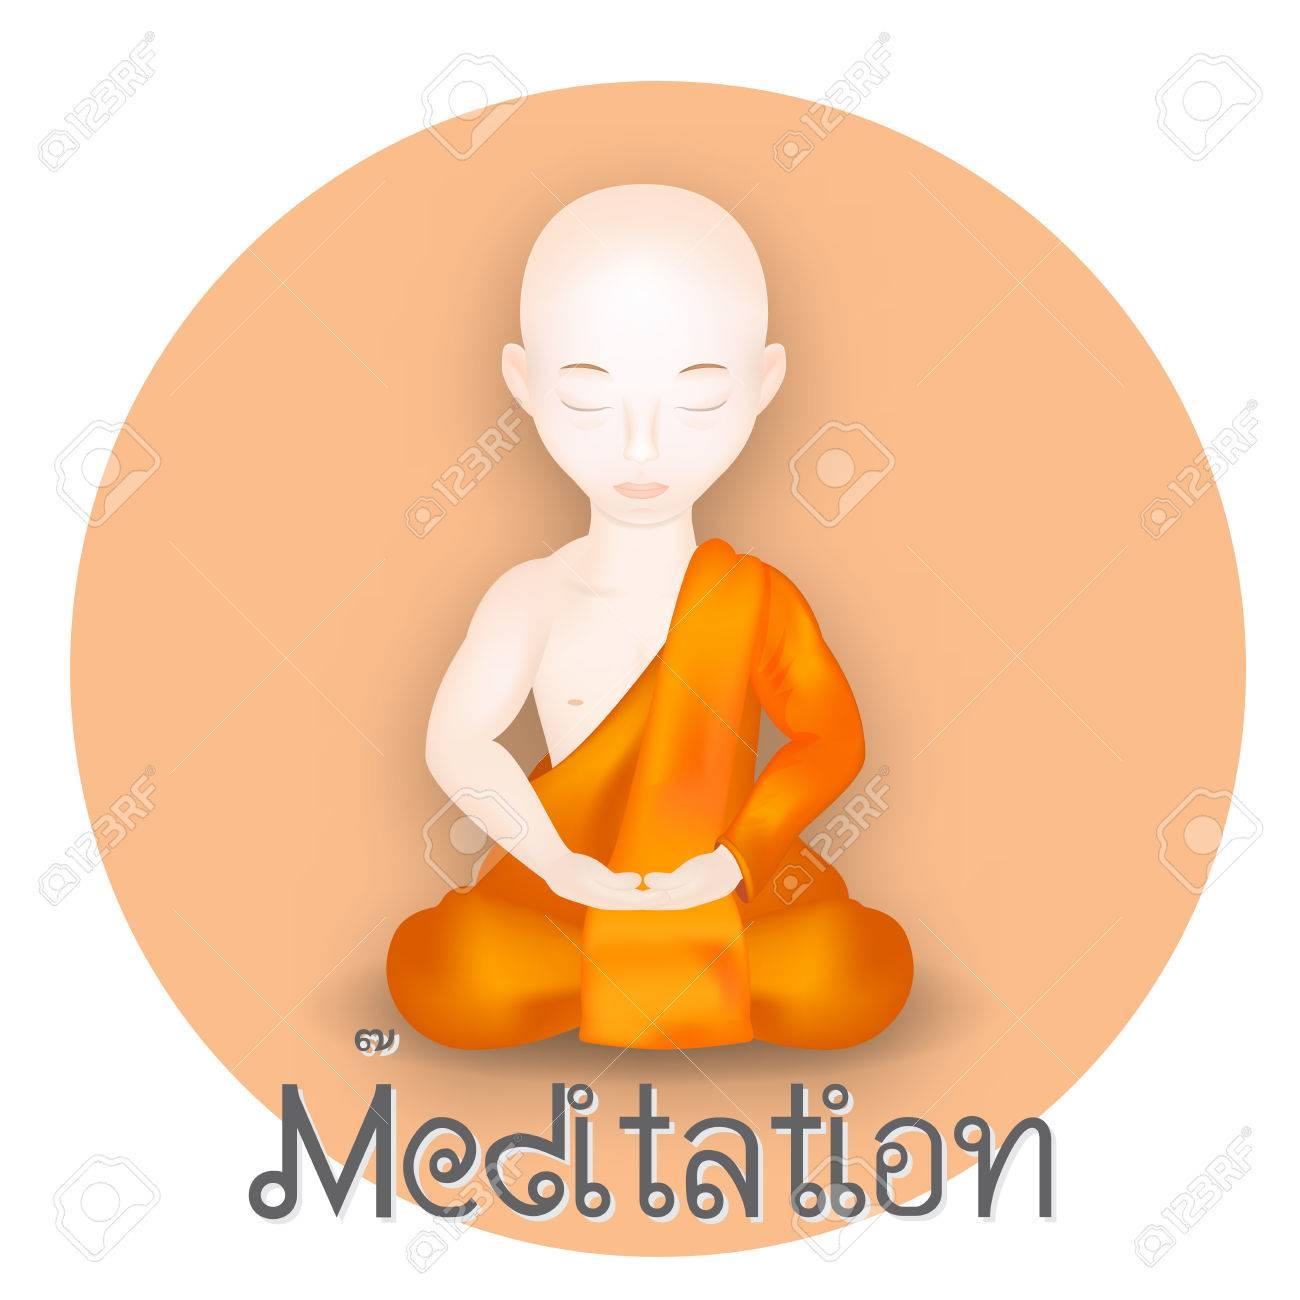 Buddhist Monk In Meditation Pose Vector Illustration Vector